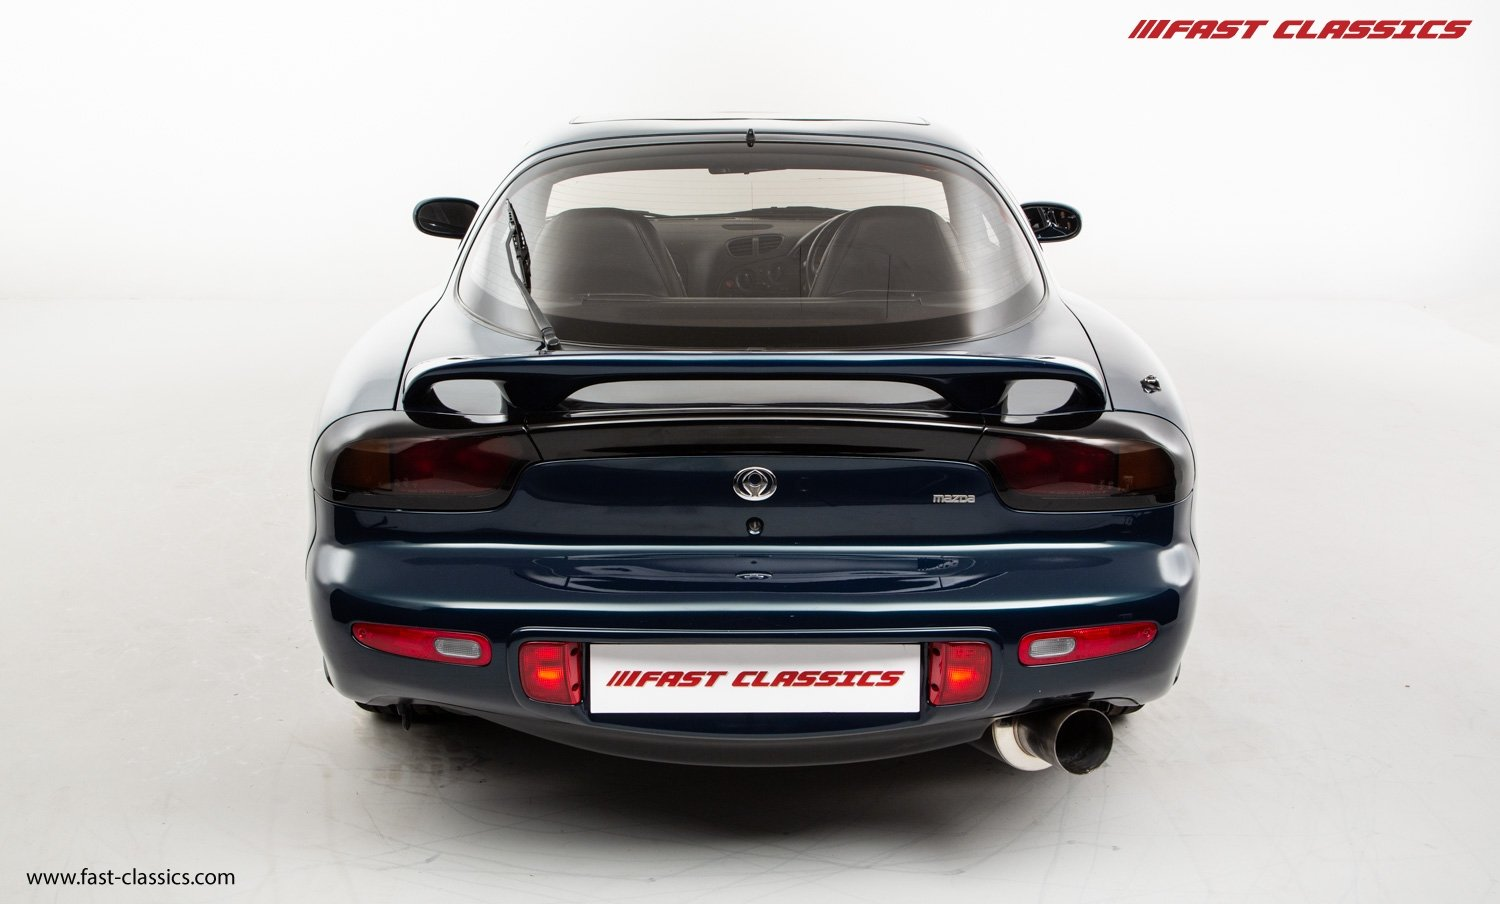 1993 MAZDA RX-7 FD // FAMILY OWNED // 26K MILES // 1 OF 210 UK DE For Sale (picture 11 of 23)